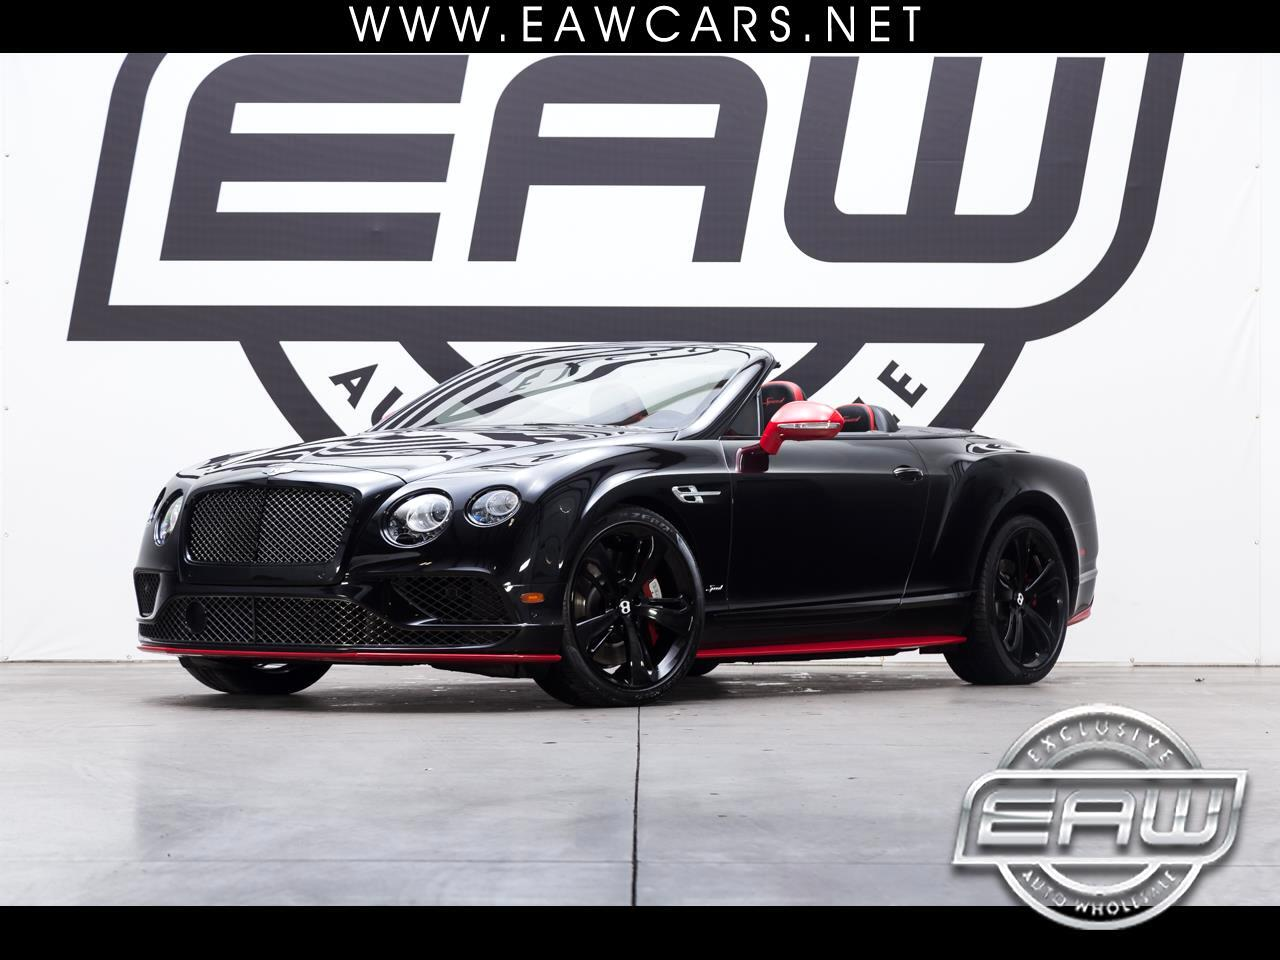 2017 Bentley Continental GTC SPEED BLACK EDITION WITH ST JAMES RED ACCENT